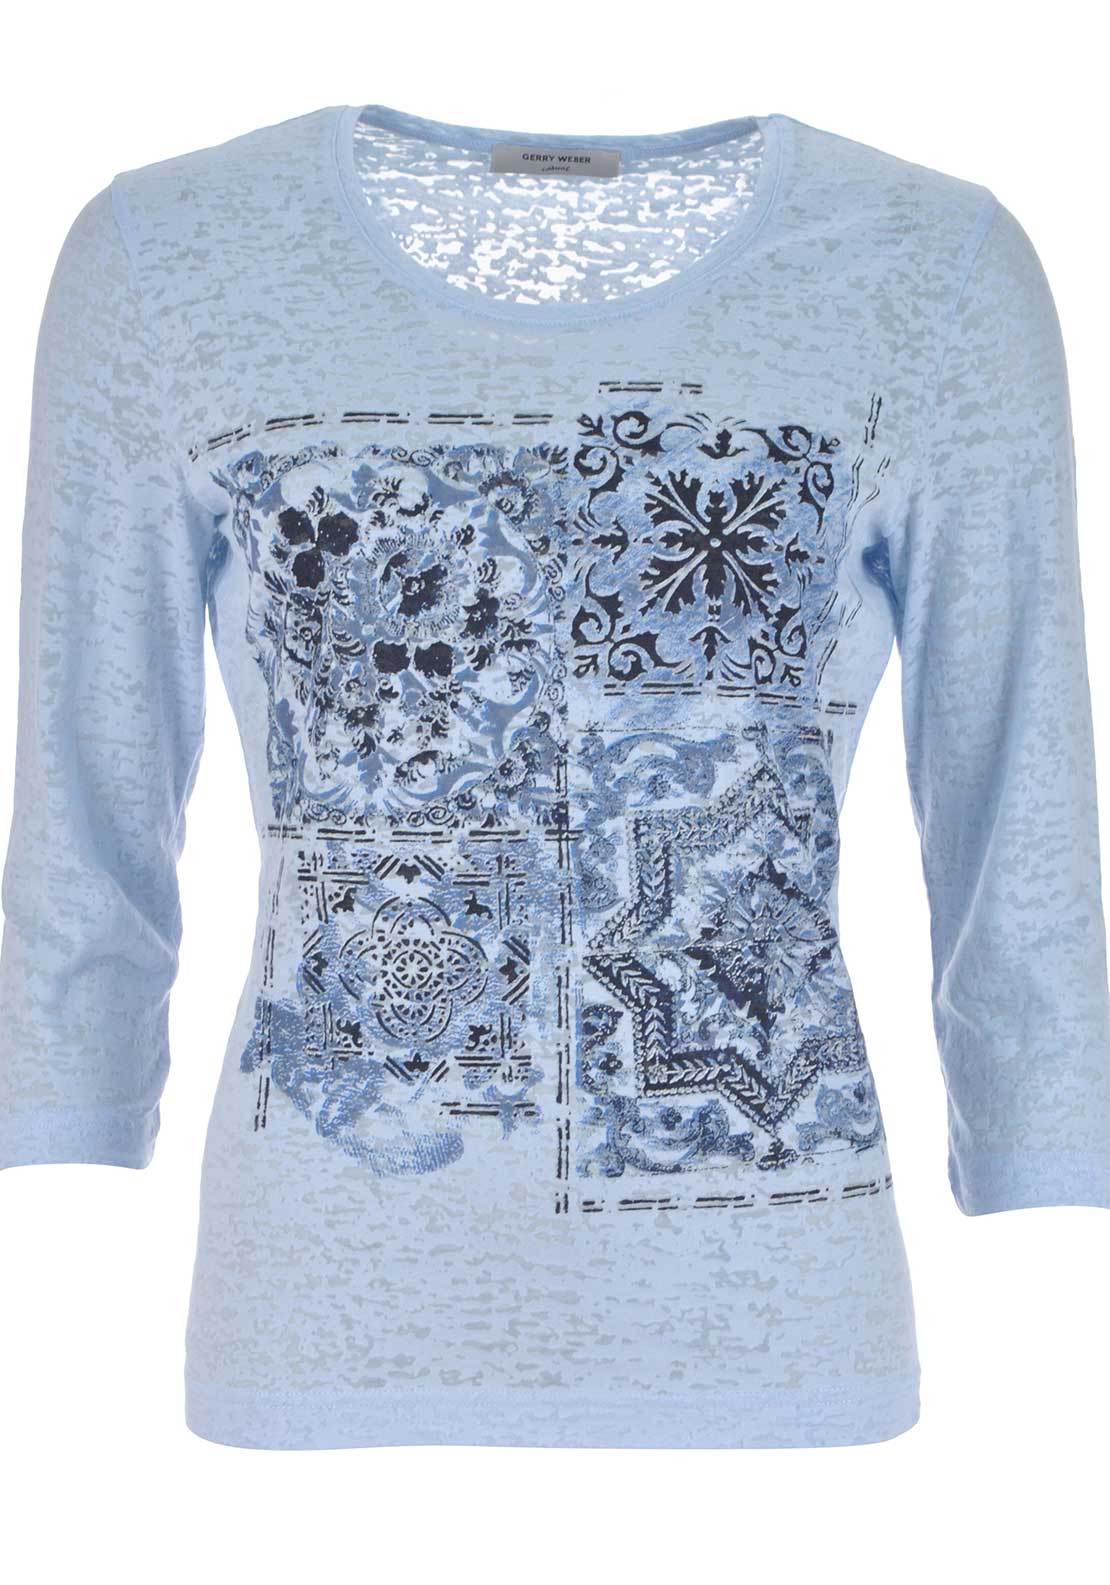 Gerry Weber Printed Cropped Sleeve T-Shirt, Pale Blue